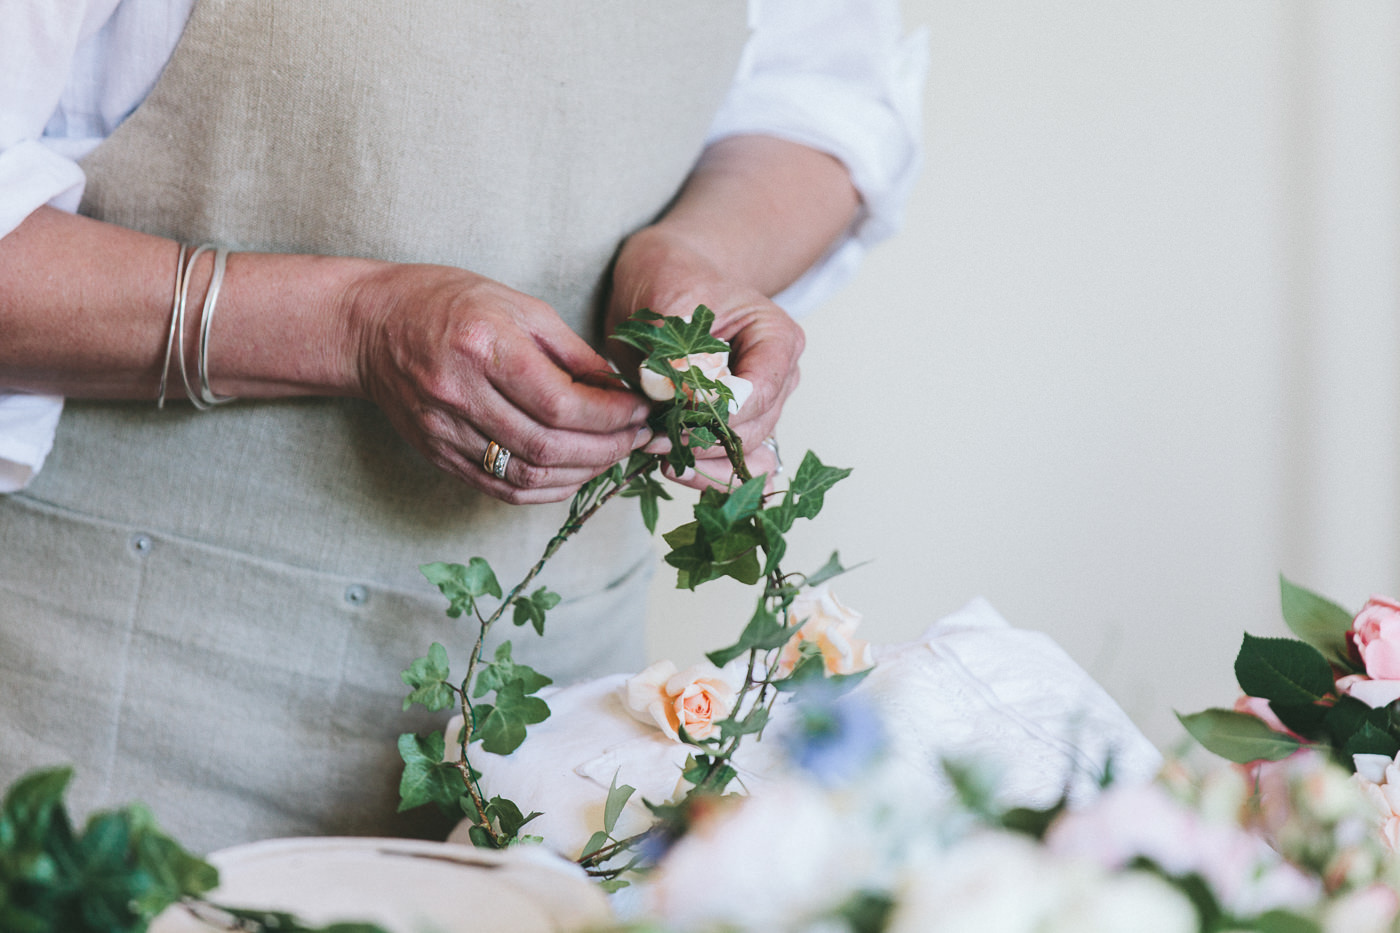 Stylist at work on floral crown